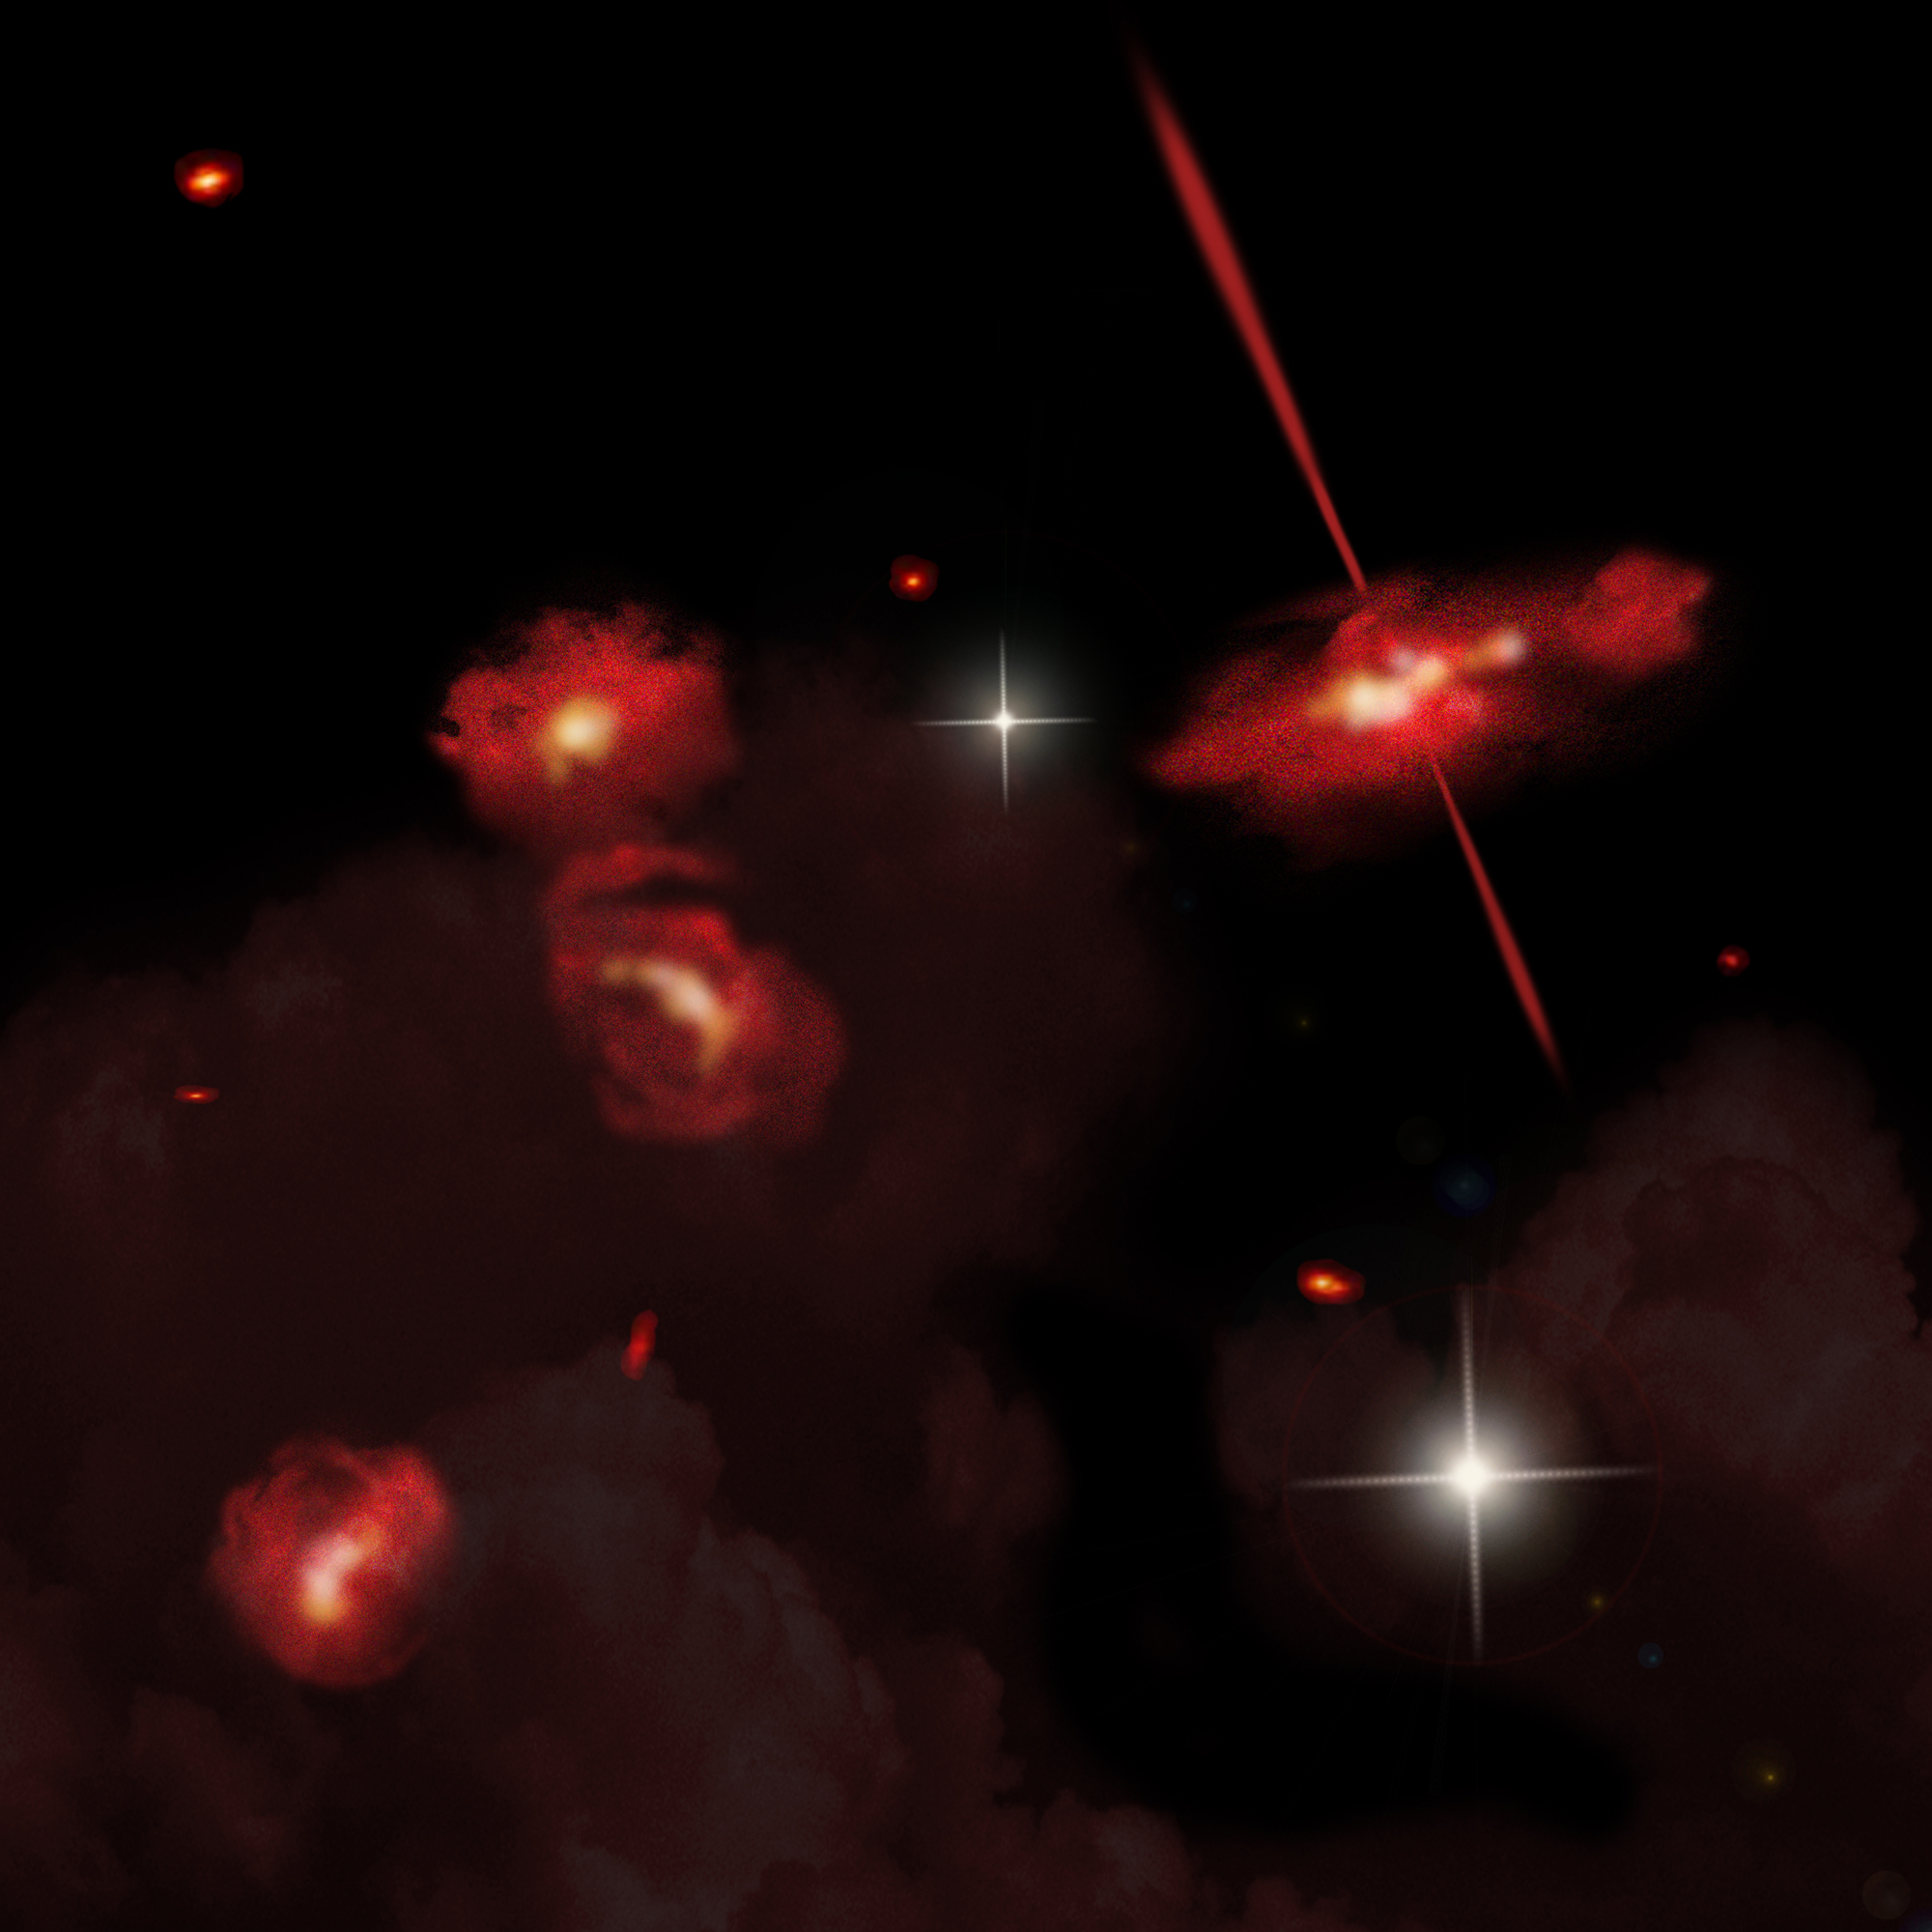 Ultra-Red Galaxies in the Distant Universe